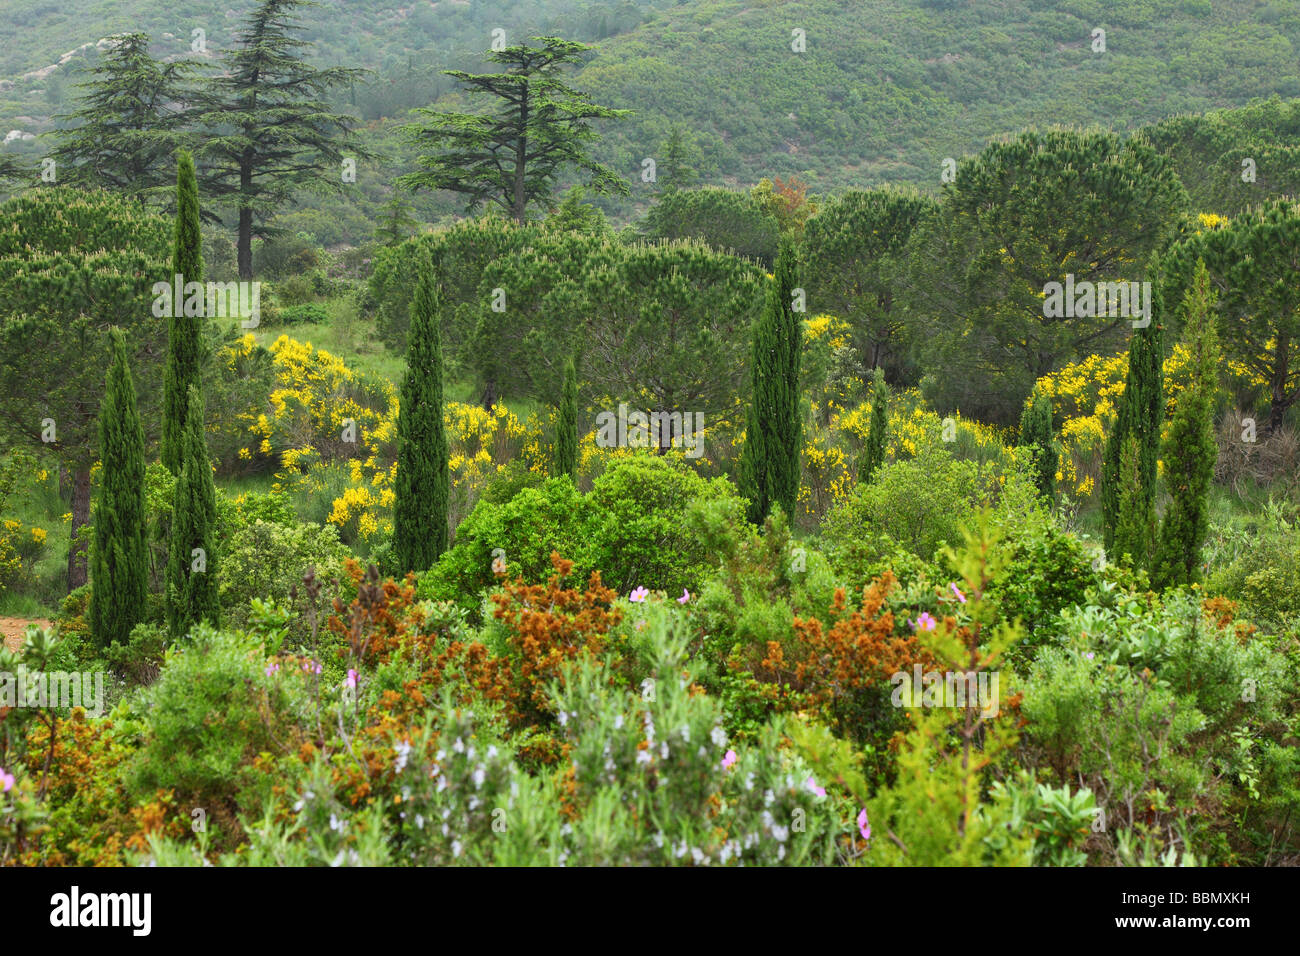 Mediterranean forest near Fontfroide Languedoc-Roussillon France - Stock Image